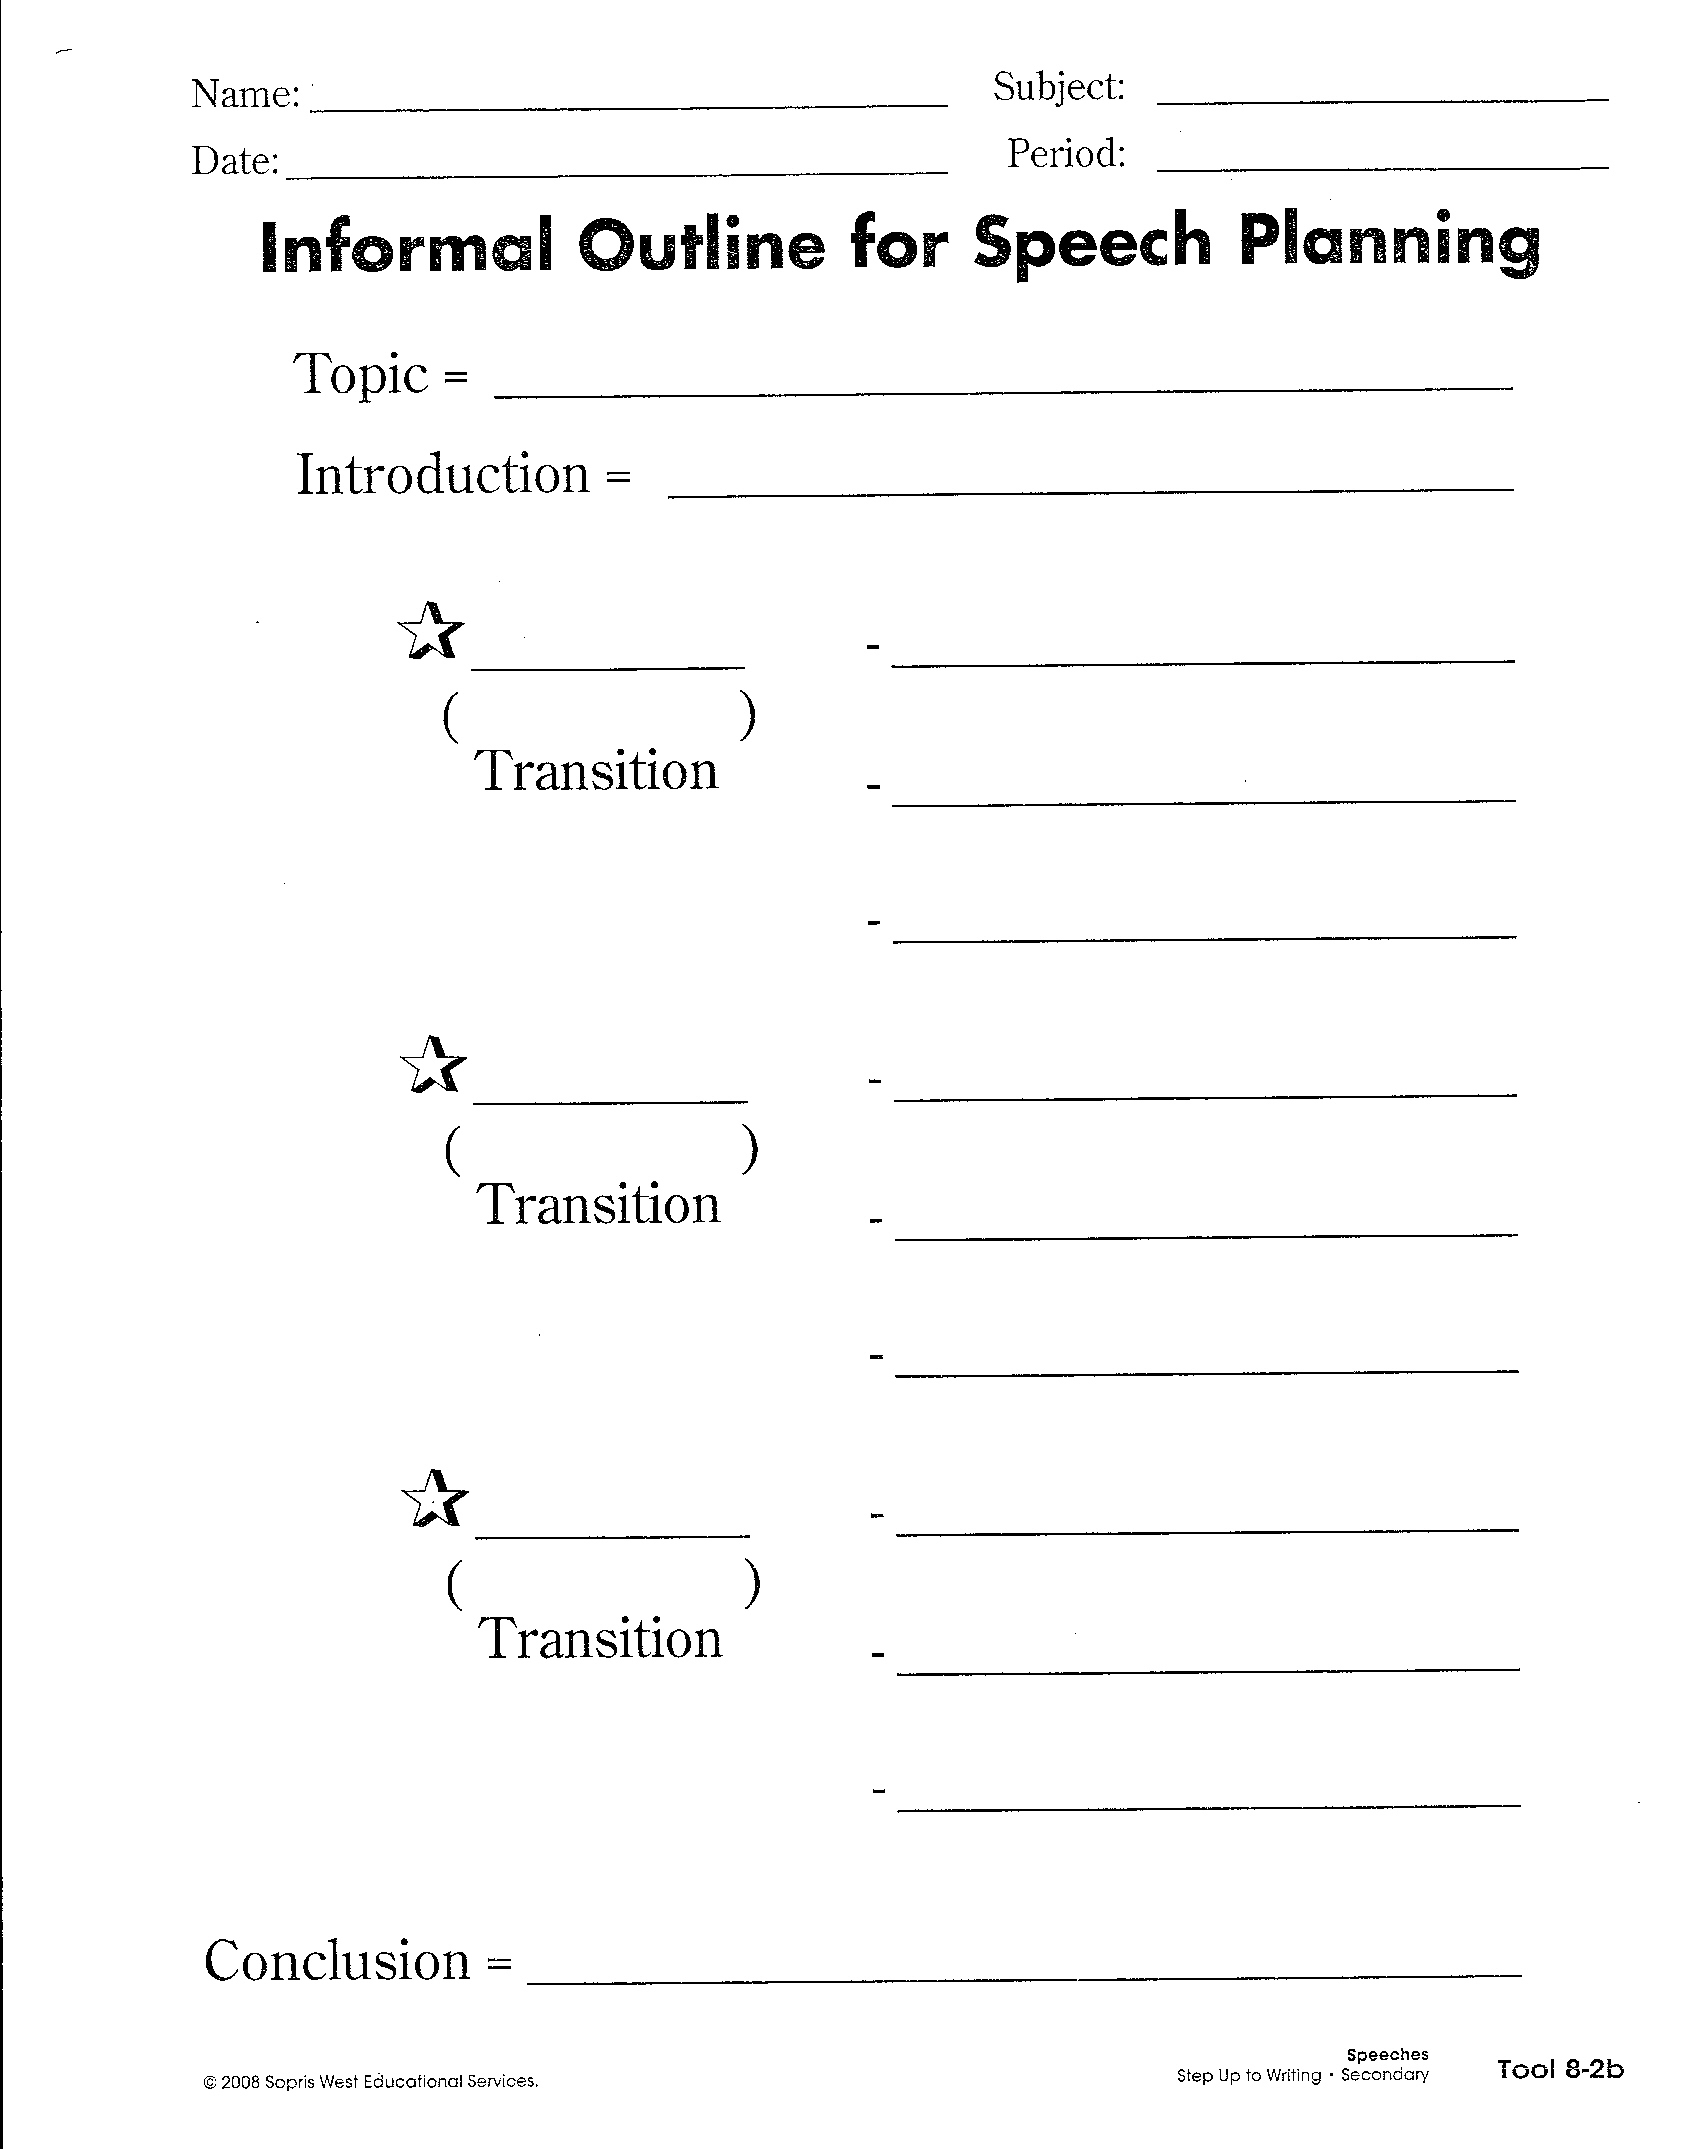 023 Making Research Paper Introduction Suw Planning Your Speech With An Informal Outline Breathtaking A Full